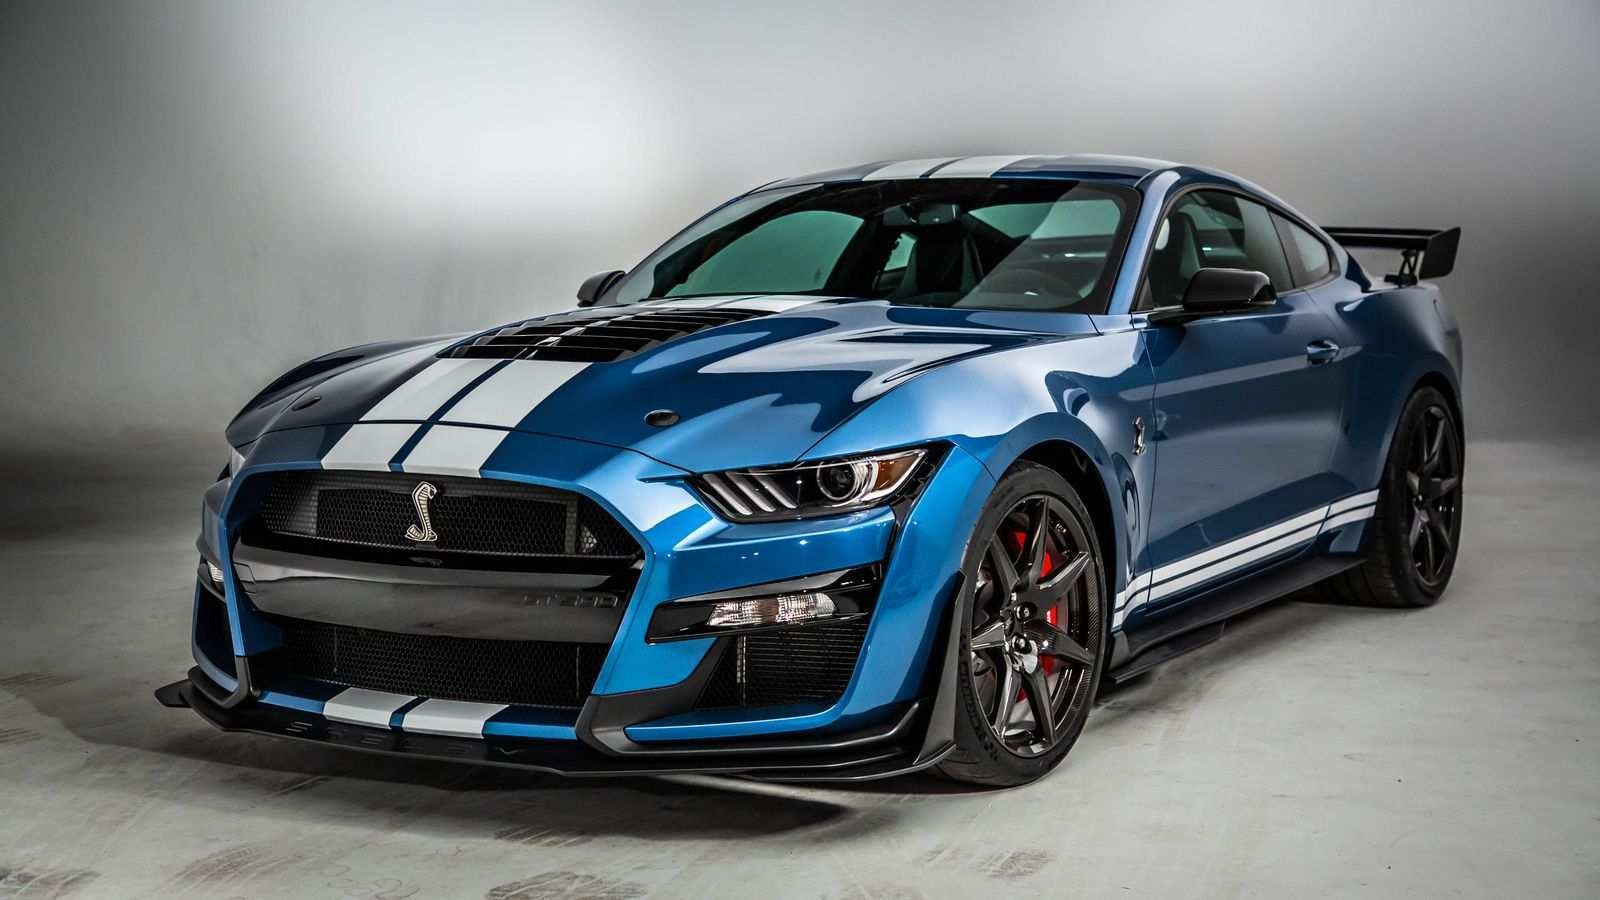 58 The Ford Mustang Gt500 Shelby 2020 Spesification